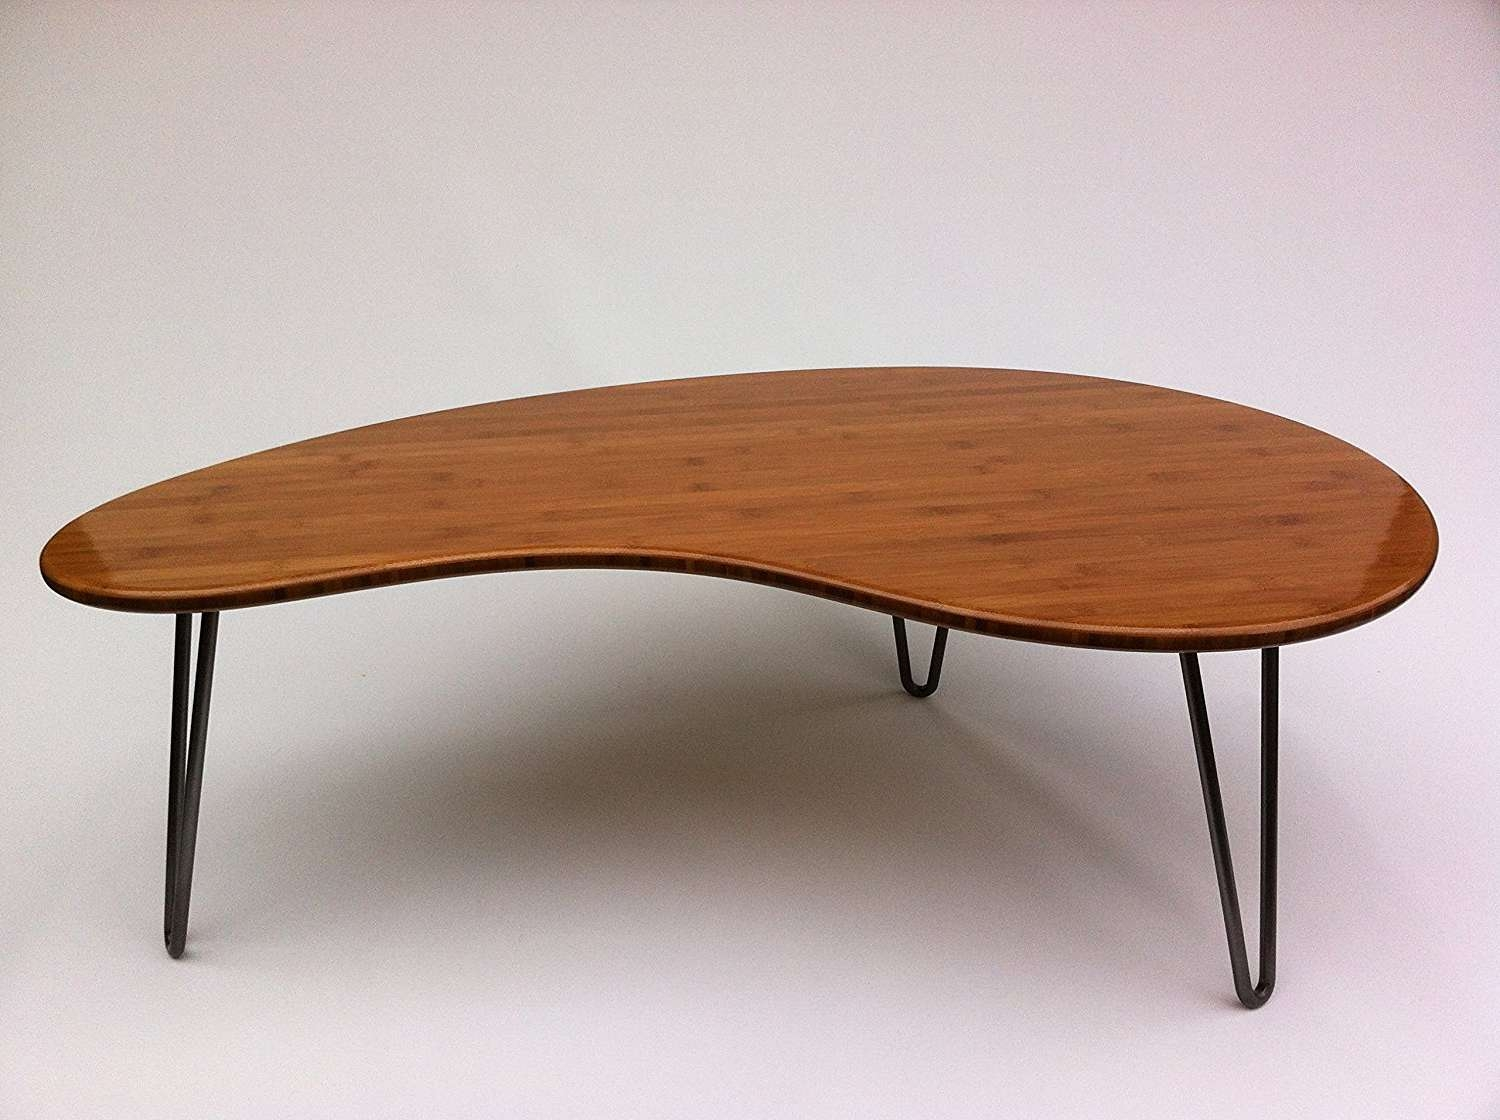 Well Known Oval Shaped Coffee Tables Regarding Coffee Tables : Small Oval Coffee Table Black Oval Coffee Table (View 7 of 20)